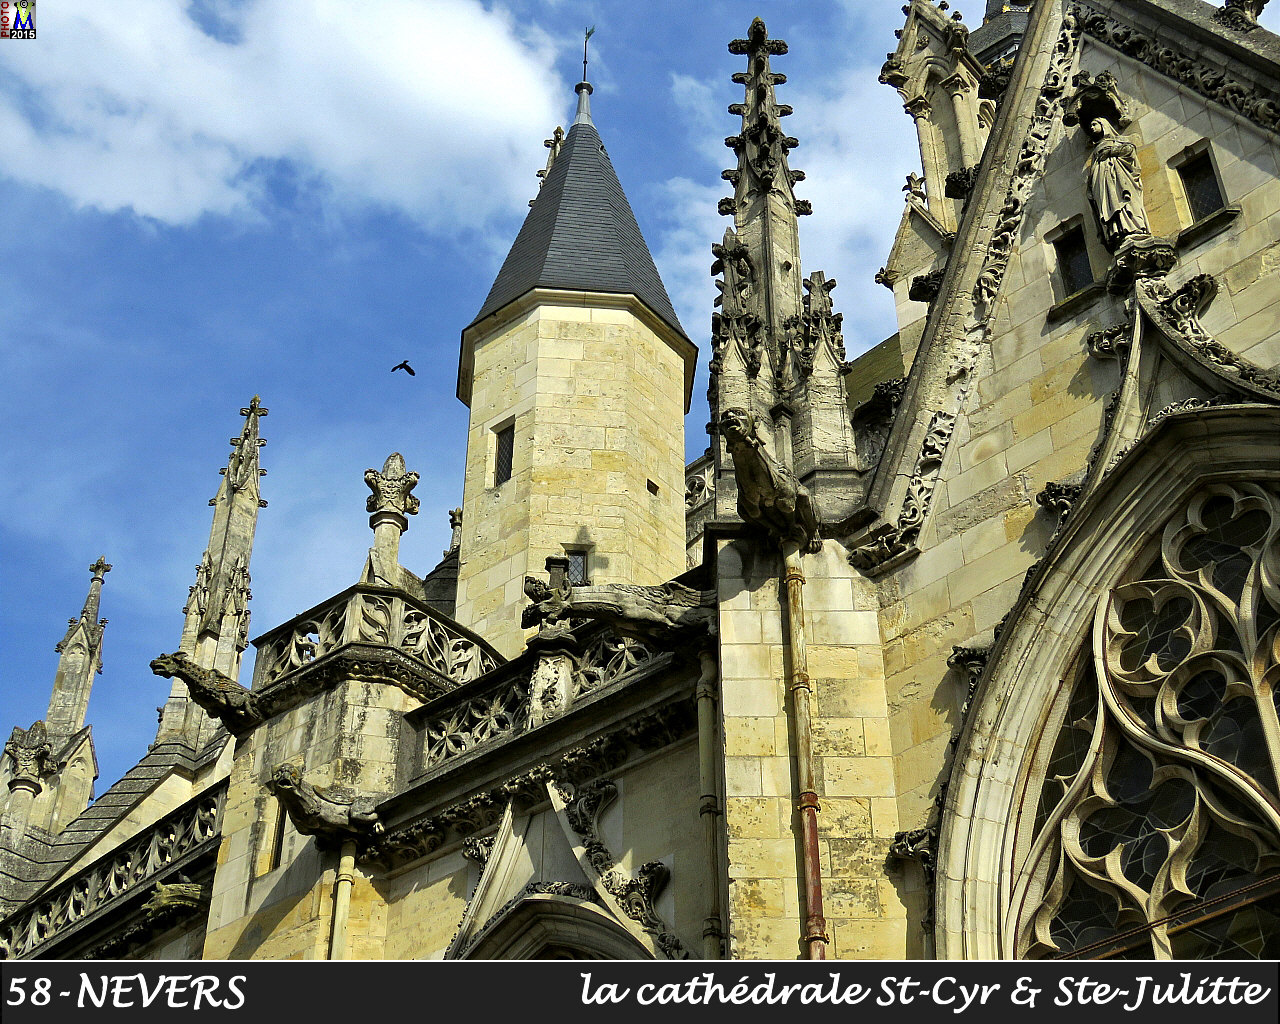 58NEVERS-cathedrale_106.jpg